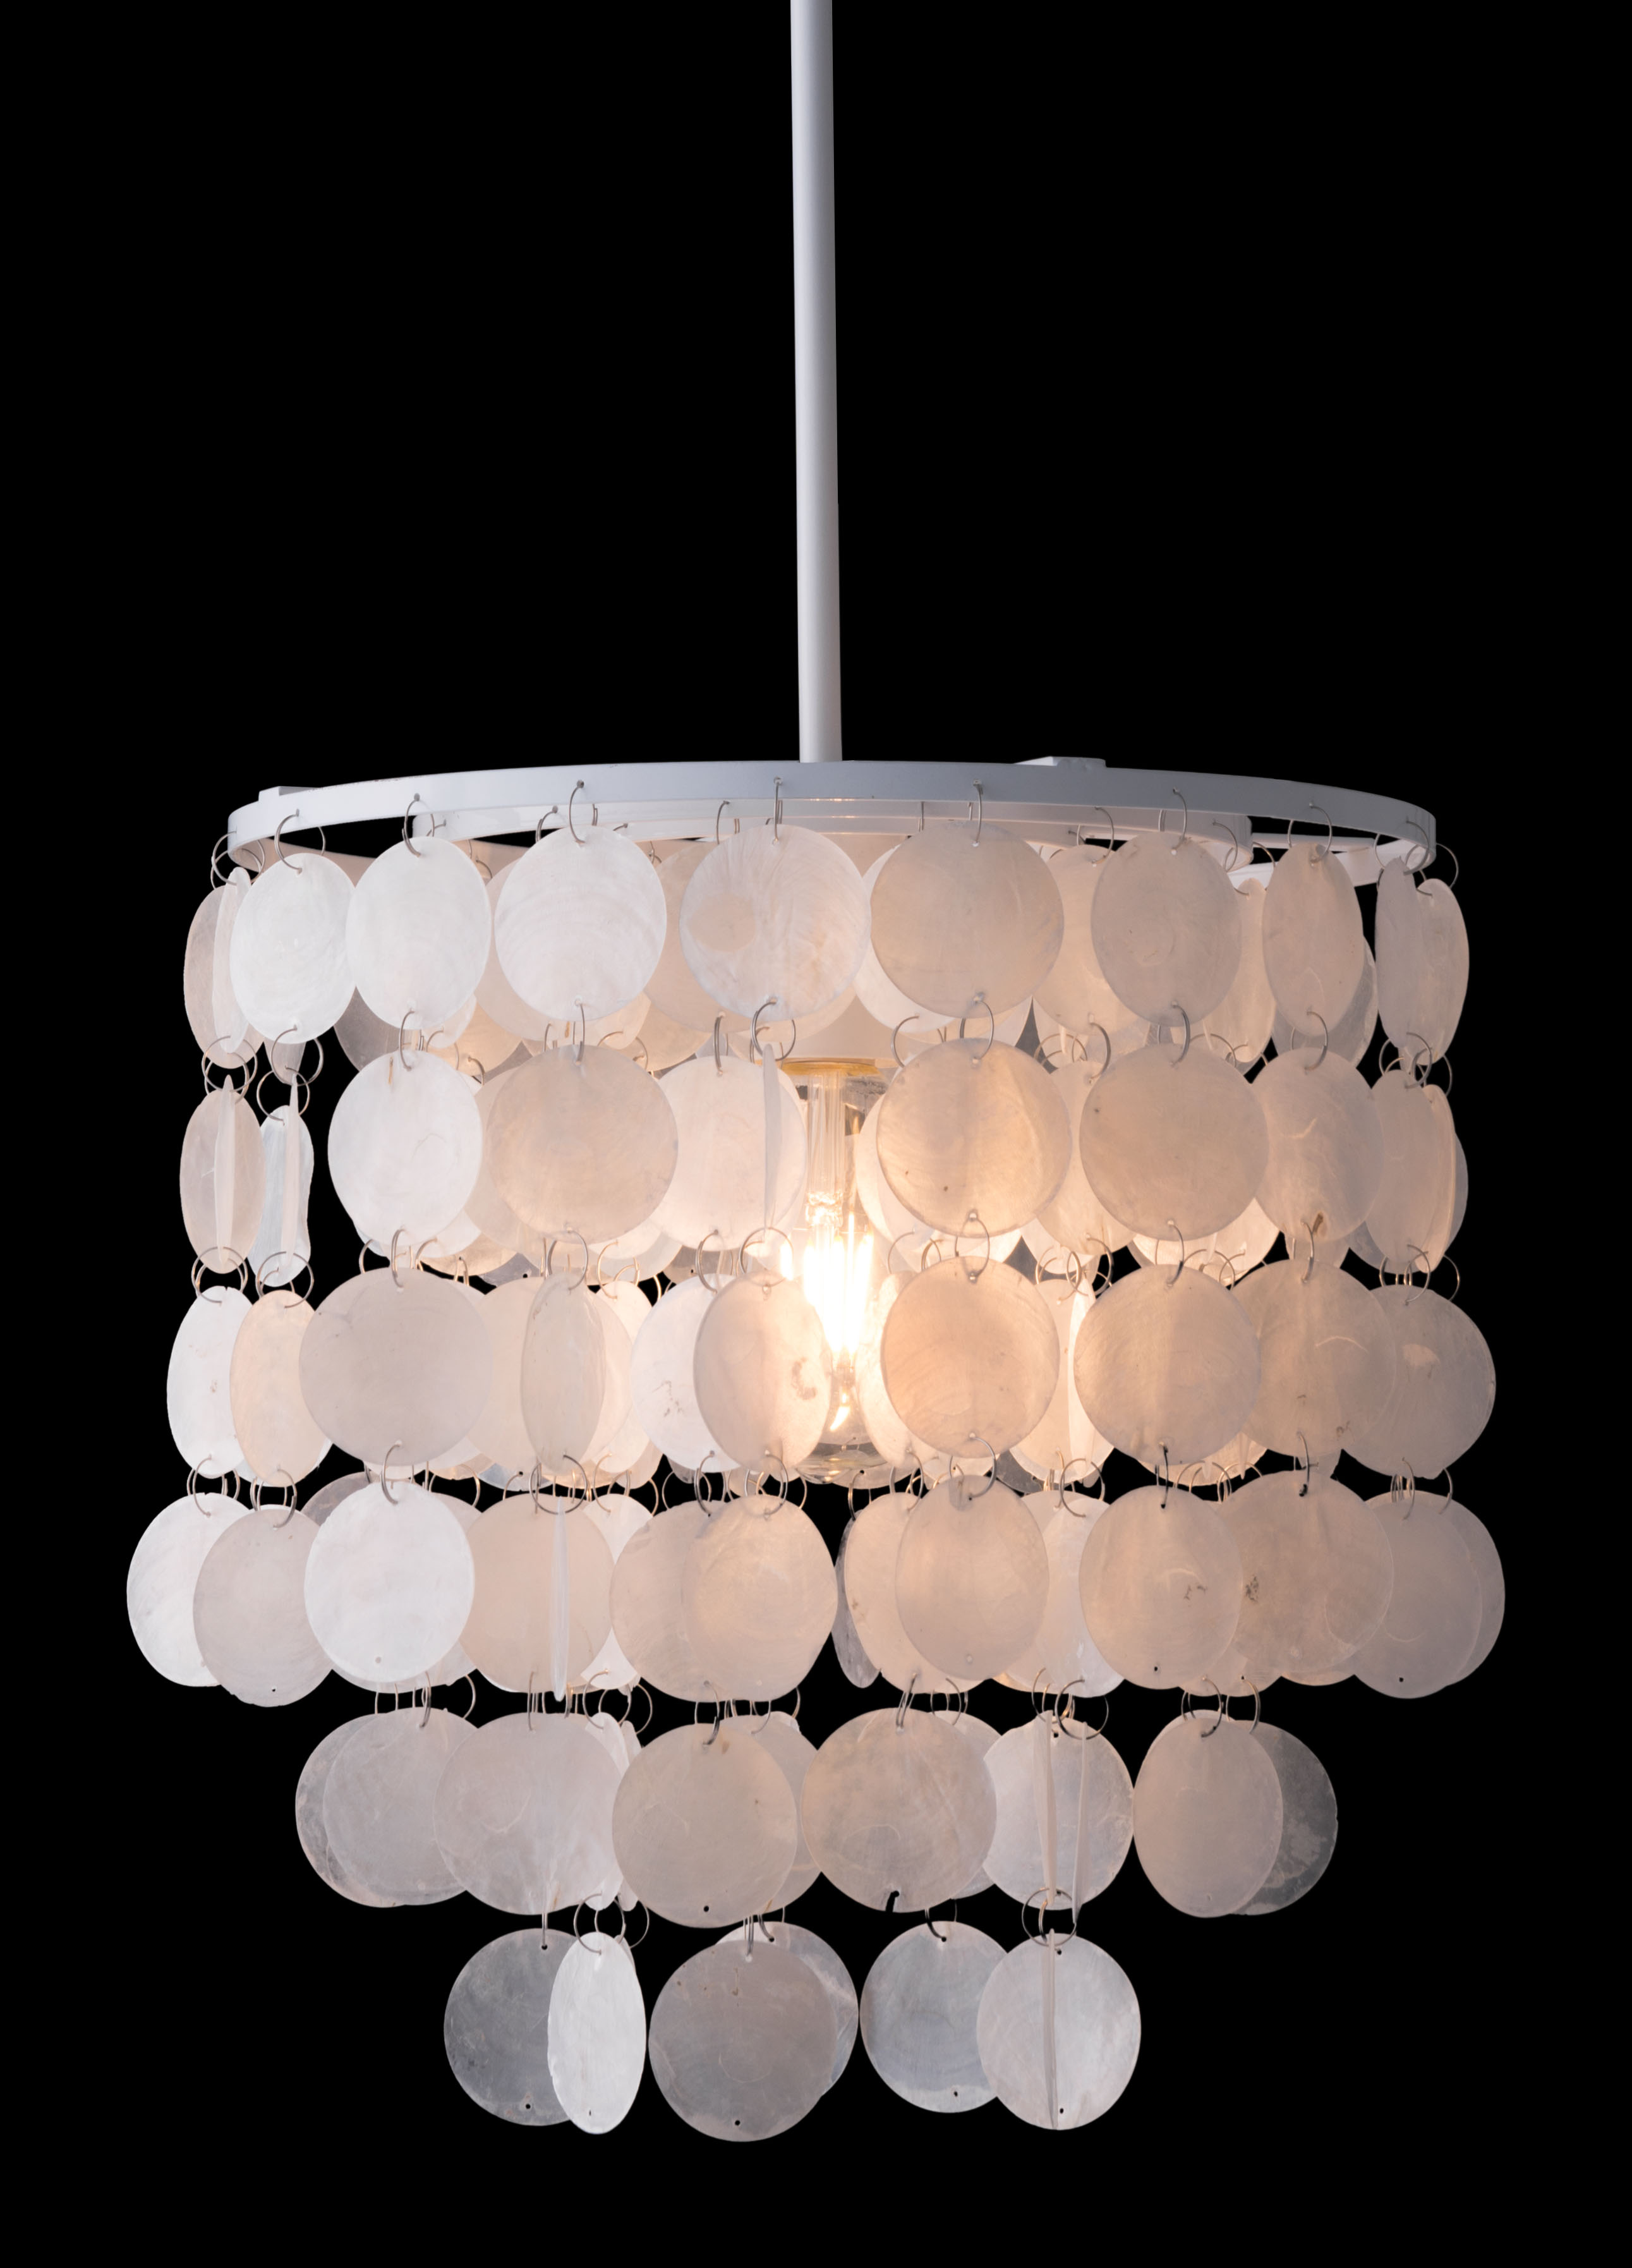 shade best dale the diy chandelier tuscan lamp size concassage seashell nautical lava shell capiz of jar medium uk dressing shades furniture info ginger hanging lamps tiffany table